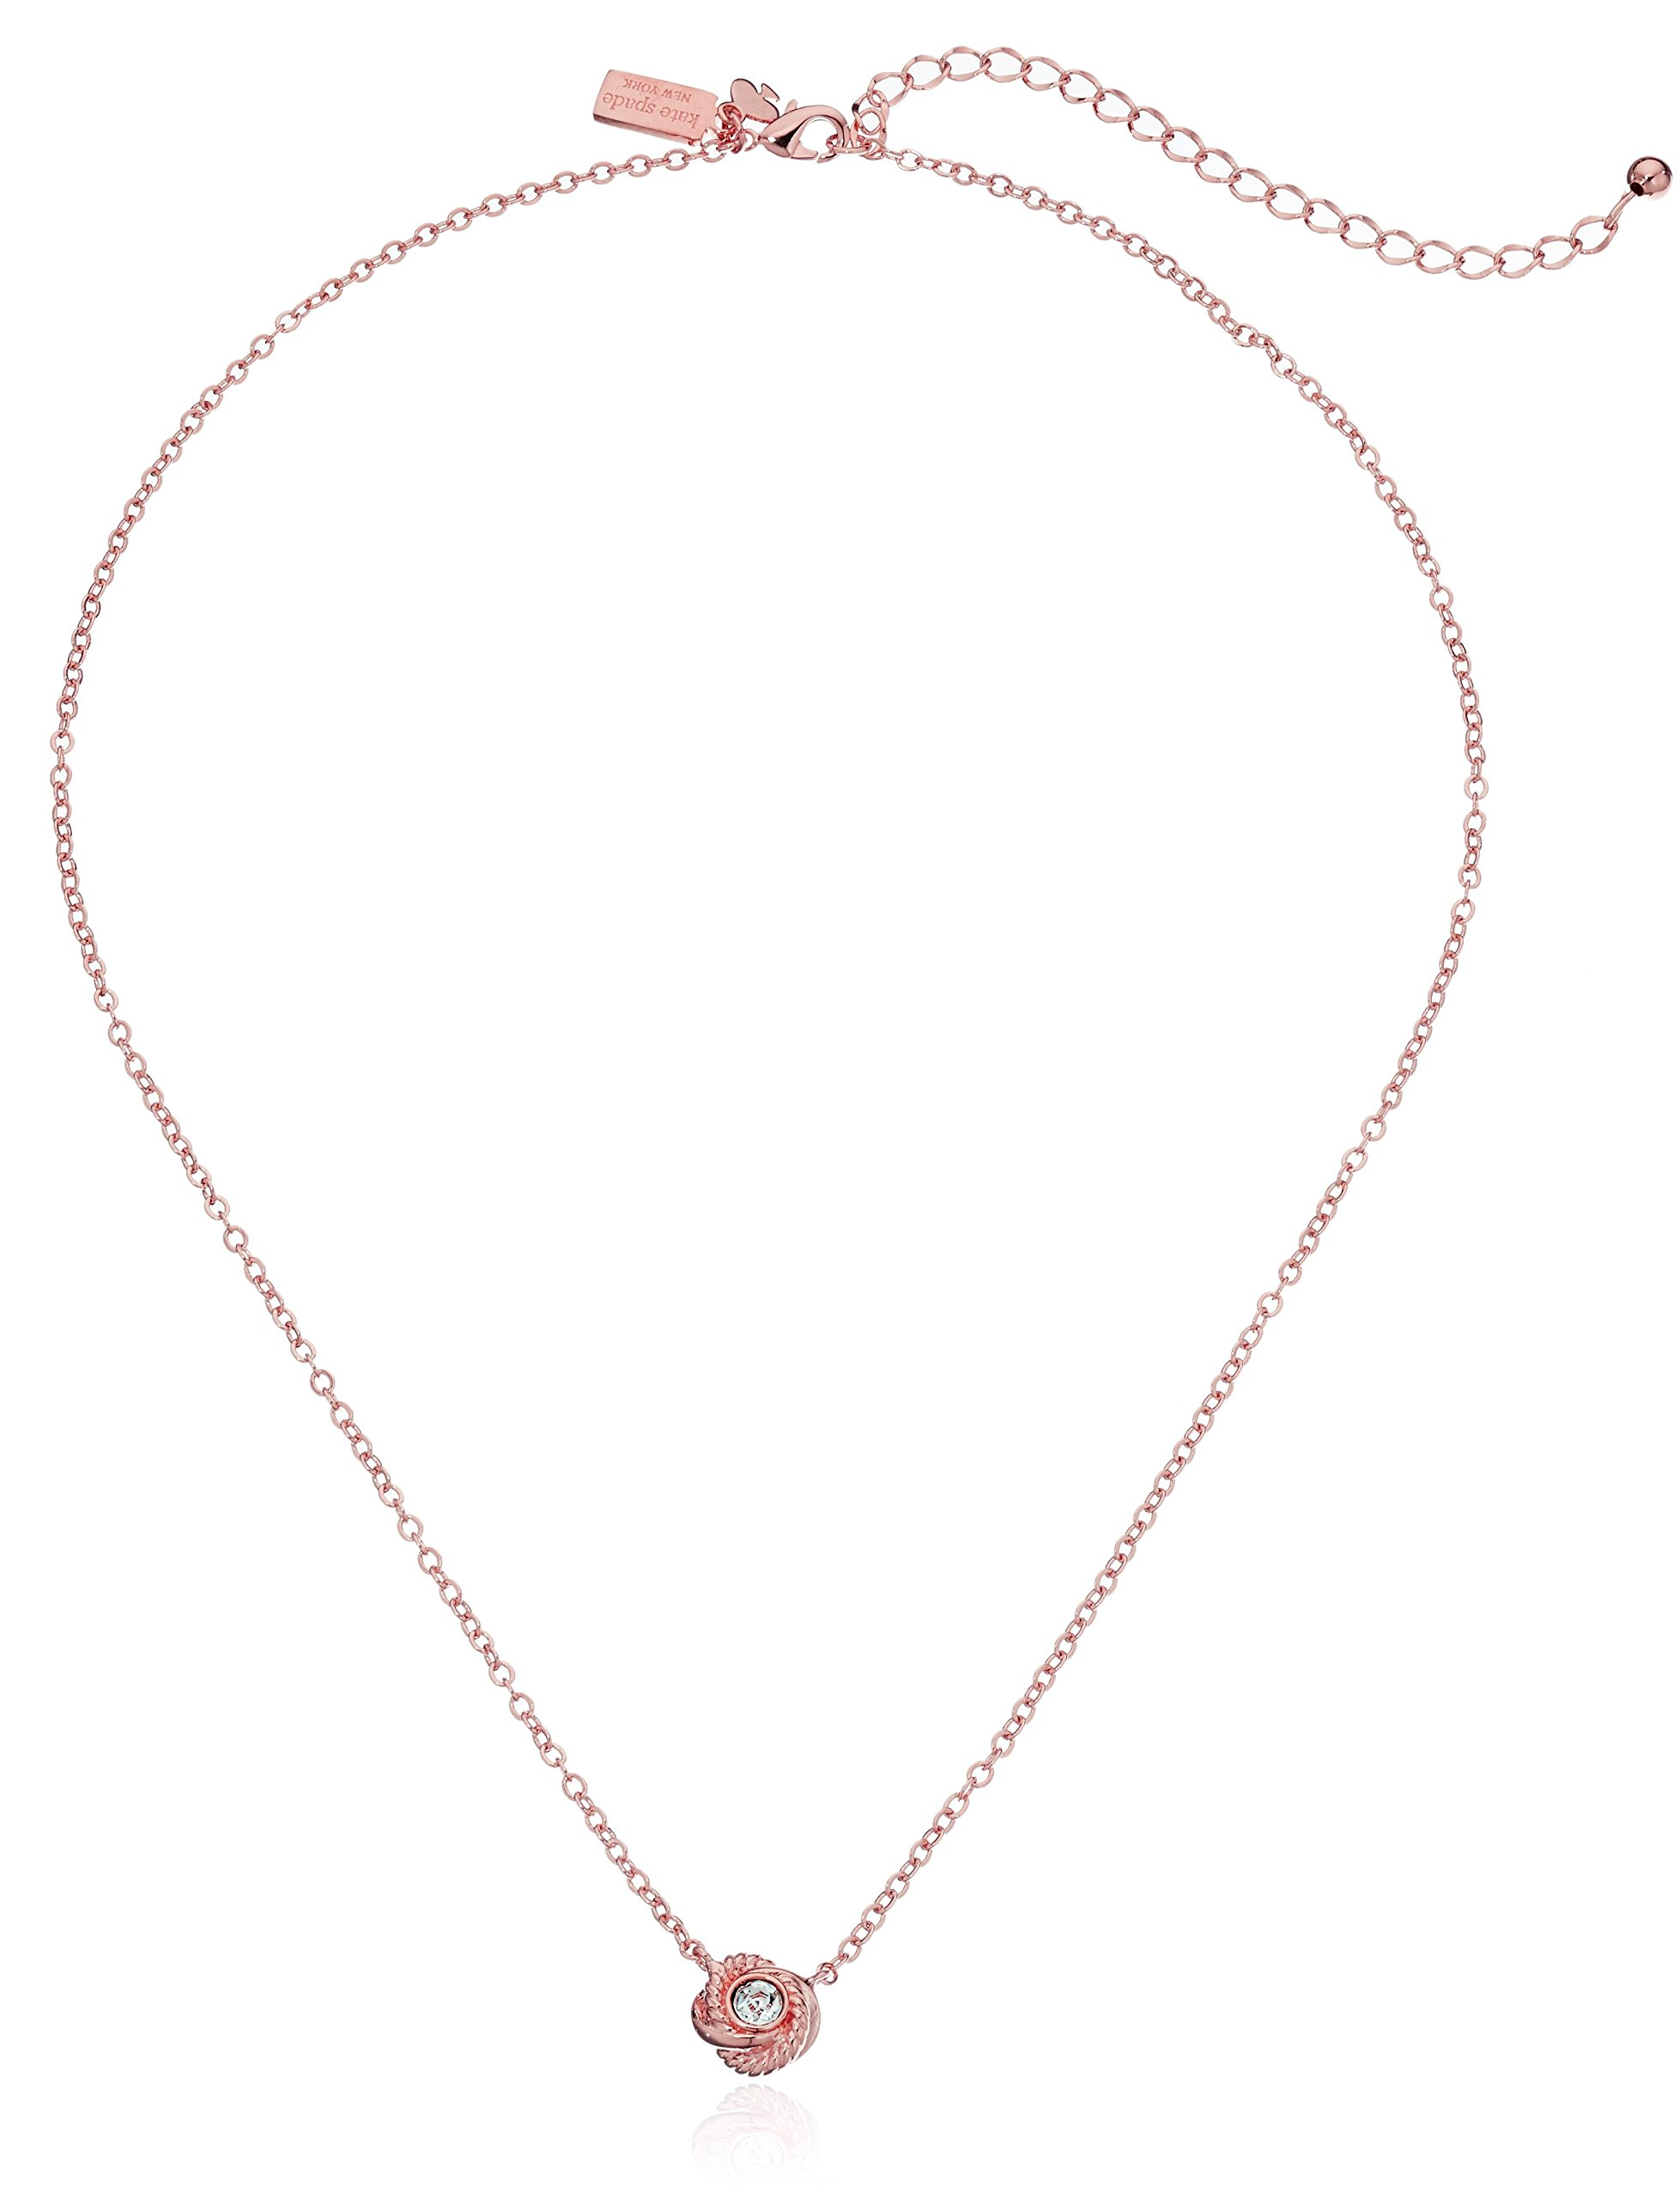 Kate Spade New York ''Infinity and Beyond Clear/Rose Gold Knot Mini Pendant Necklace, 17'' + 3'' Extender